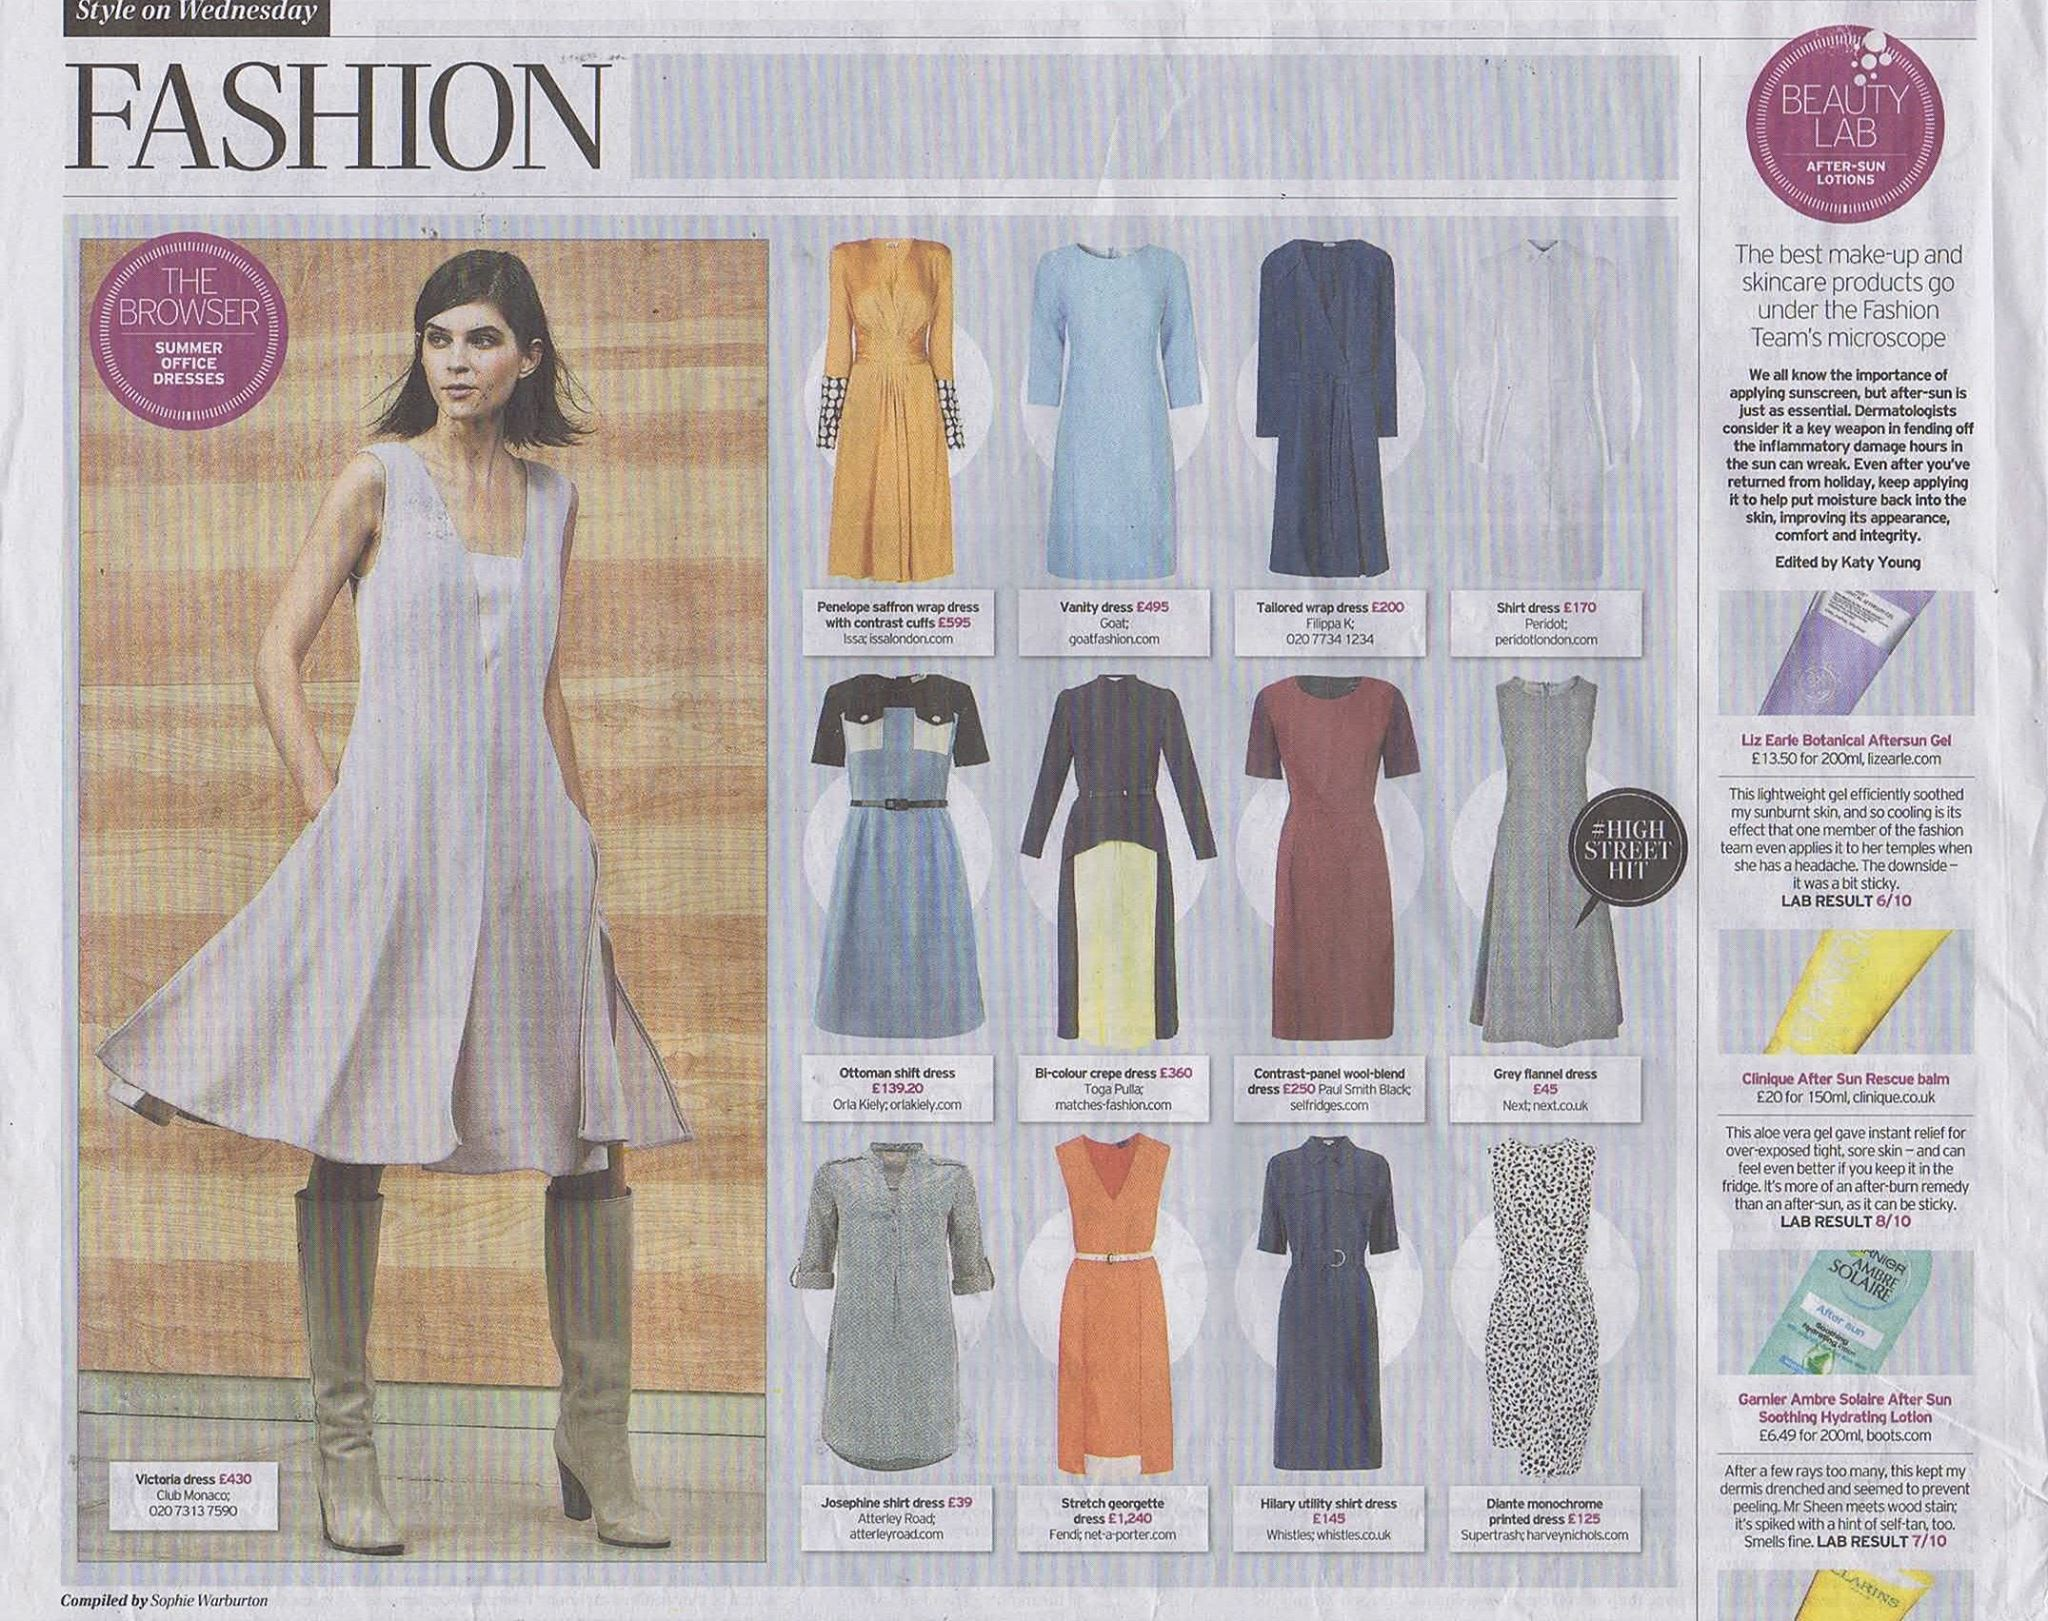 So pleased to be featured in The Daily Telegraph's round up of summer office dresses with our ever versatile white cotton shirtdress - A Peridot wardrobe essential.